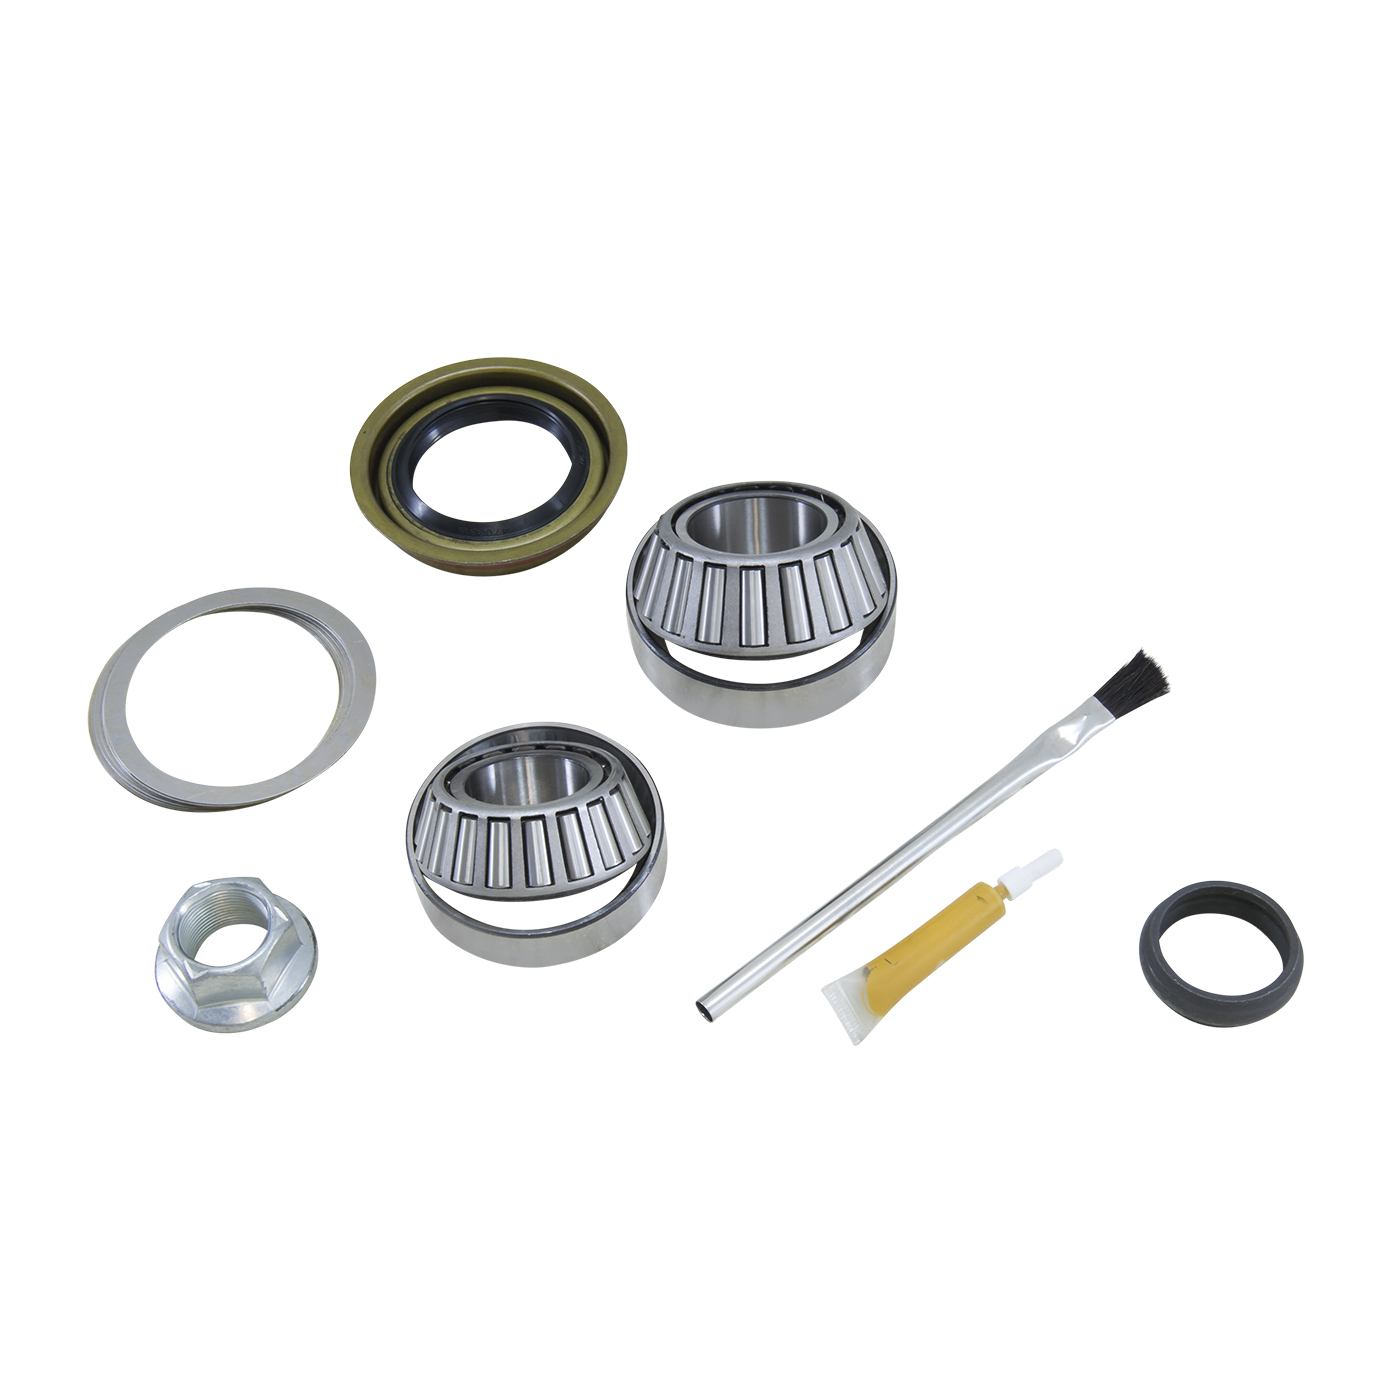 ZPKM35 - USA Standard Pinion installation kit for AMC Model 35 rear